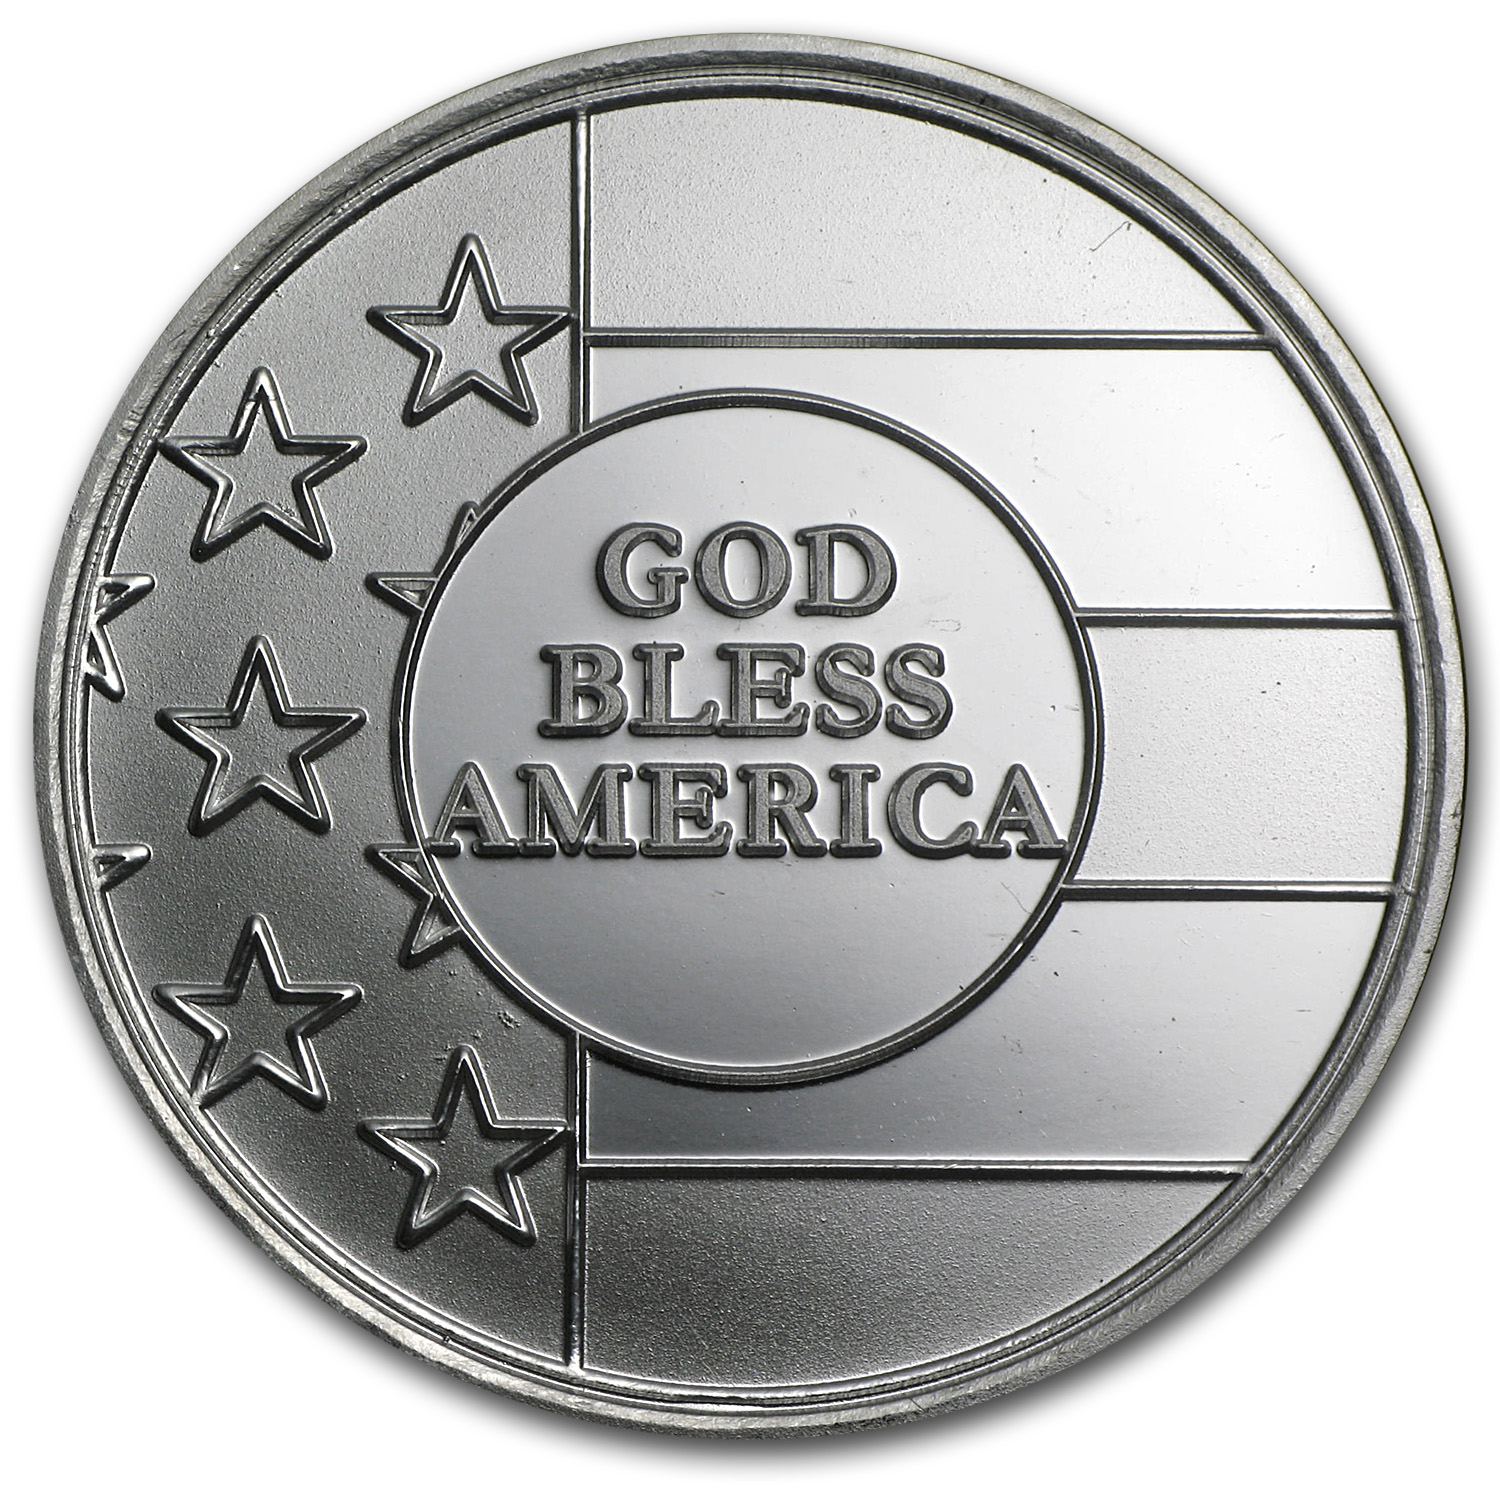 1 oz Silver Rounds - God Bless America